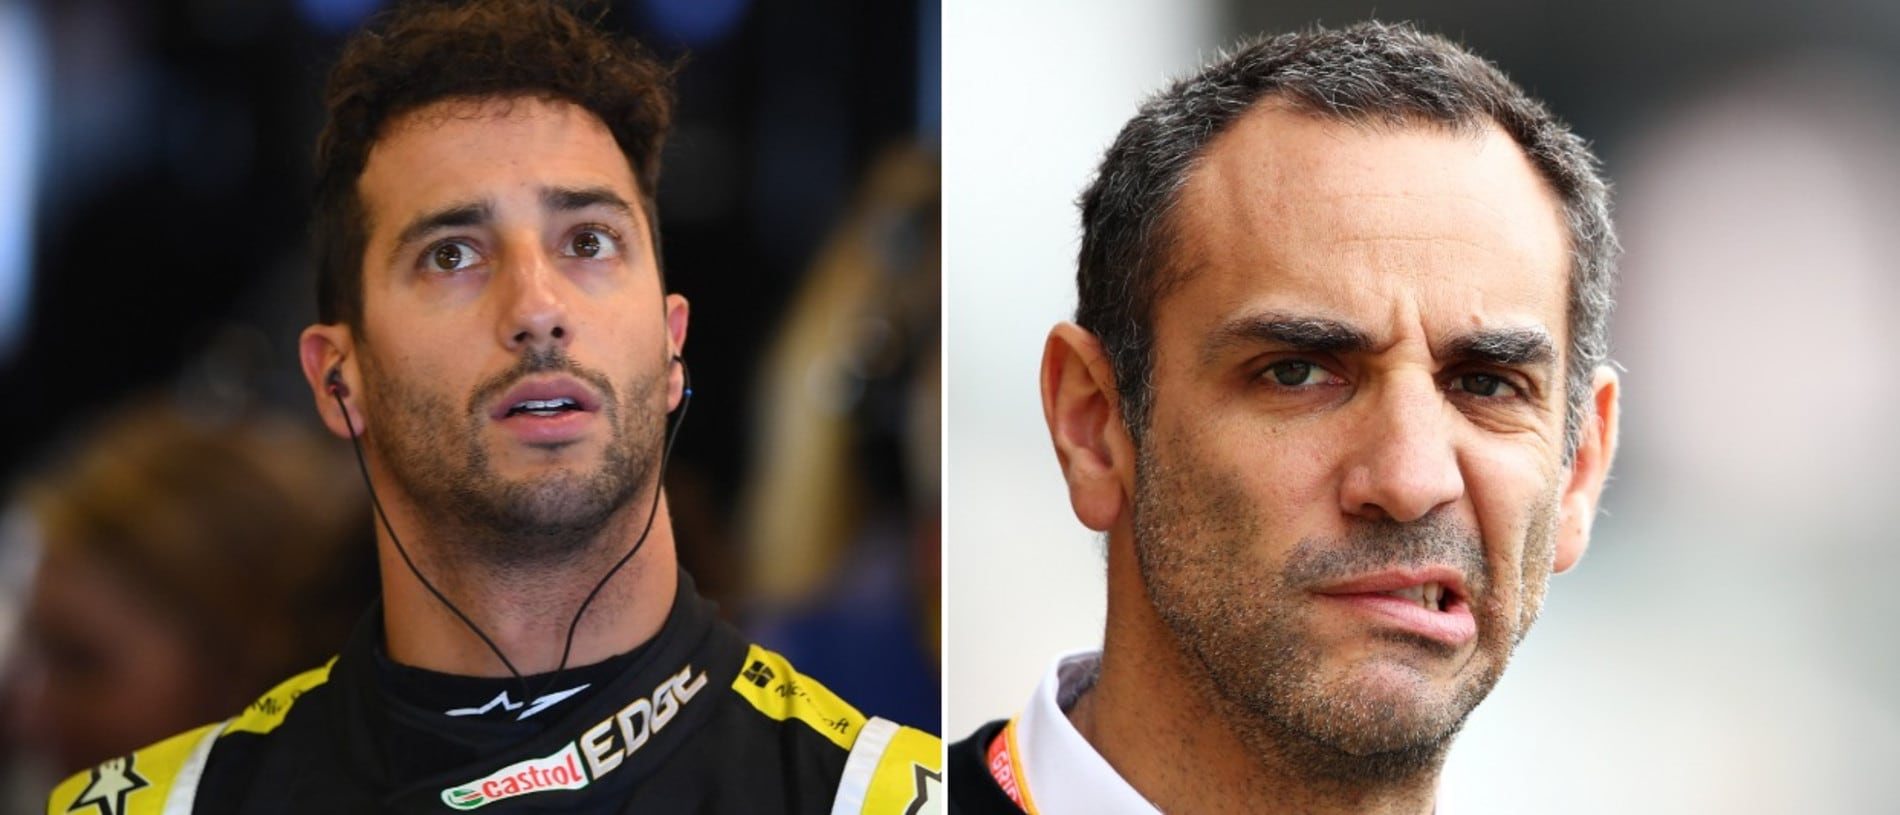 Cyril Abiteboul said Daniel Ricciardo's result was 'nothing to be proud of'.